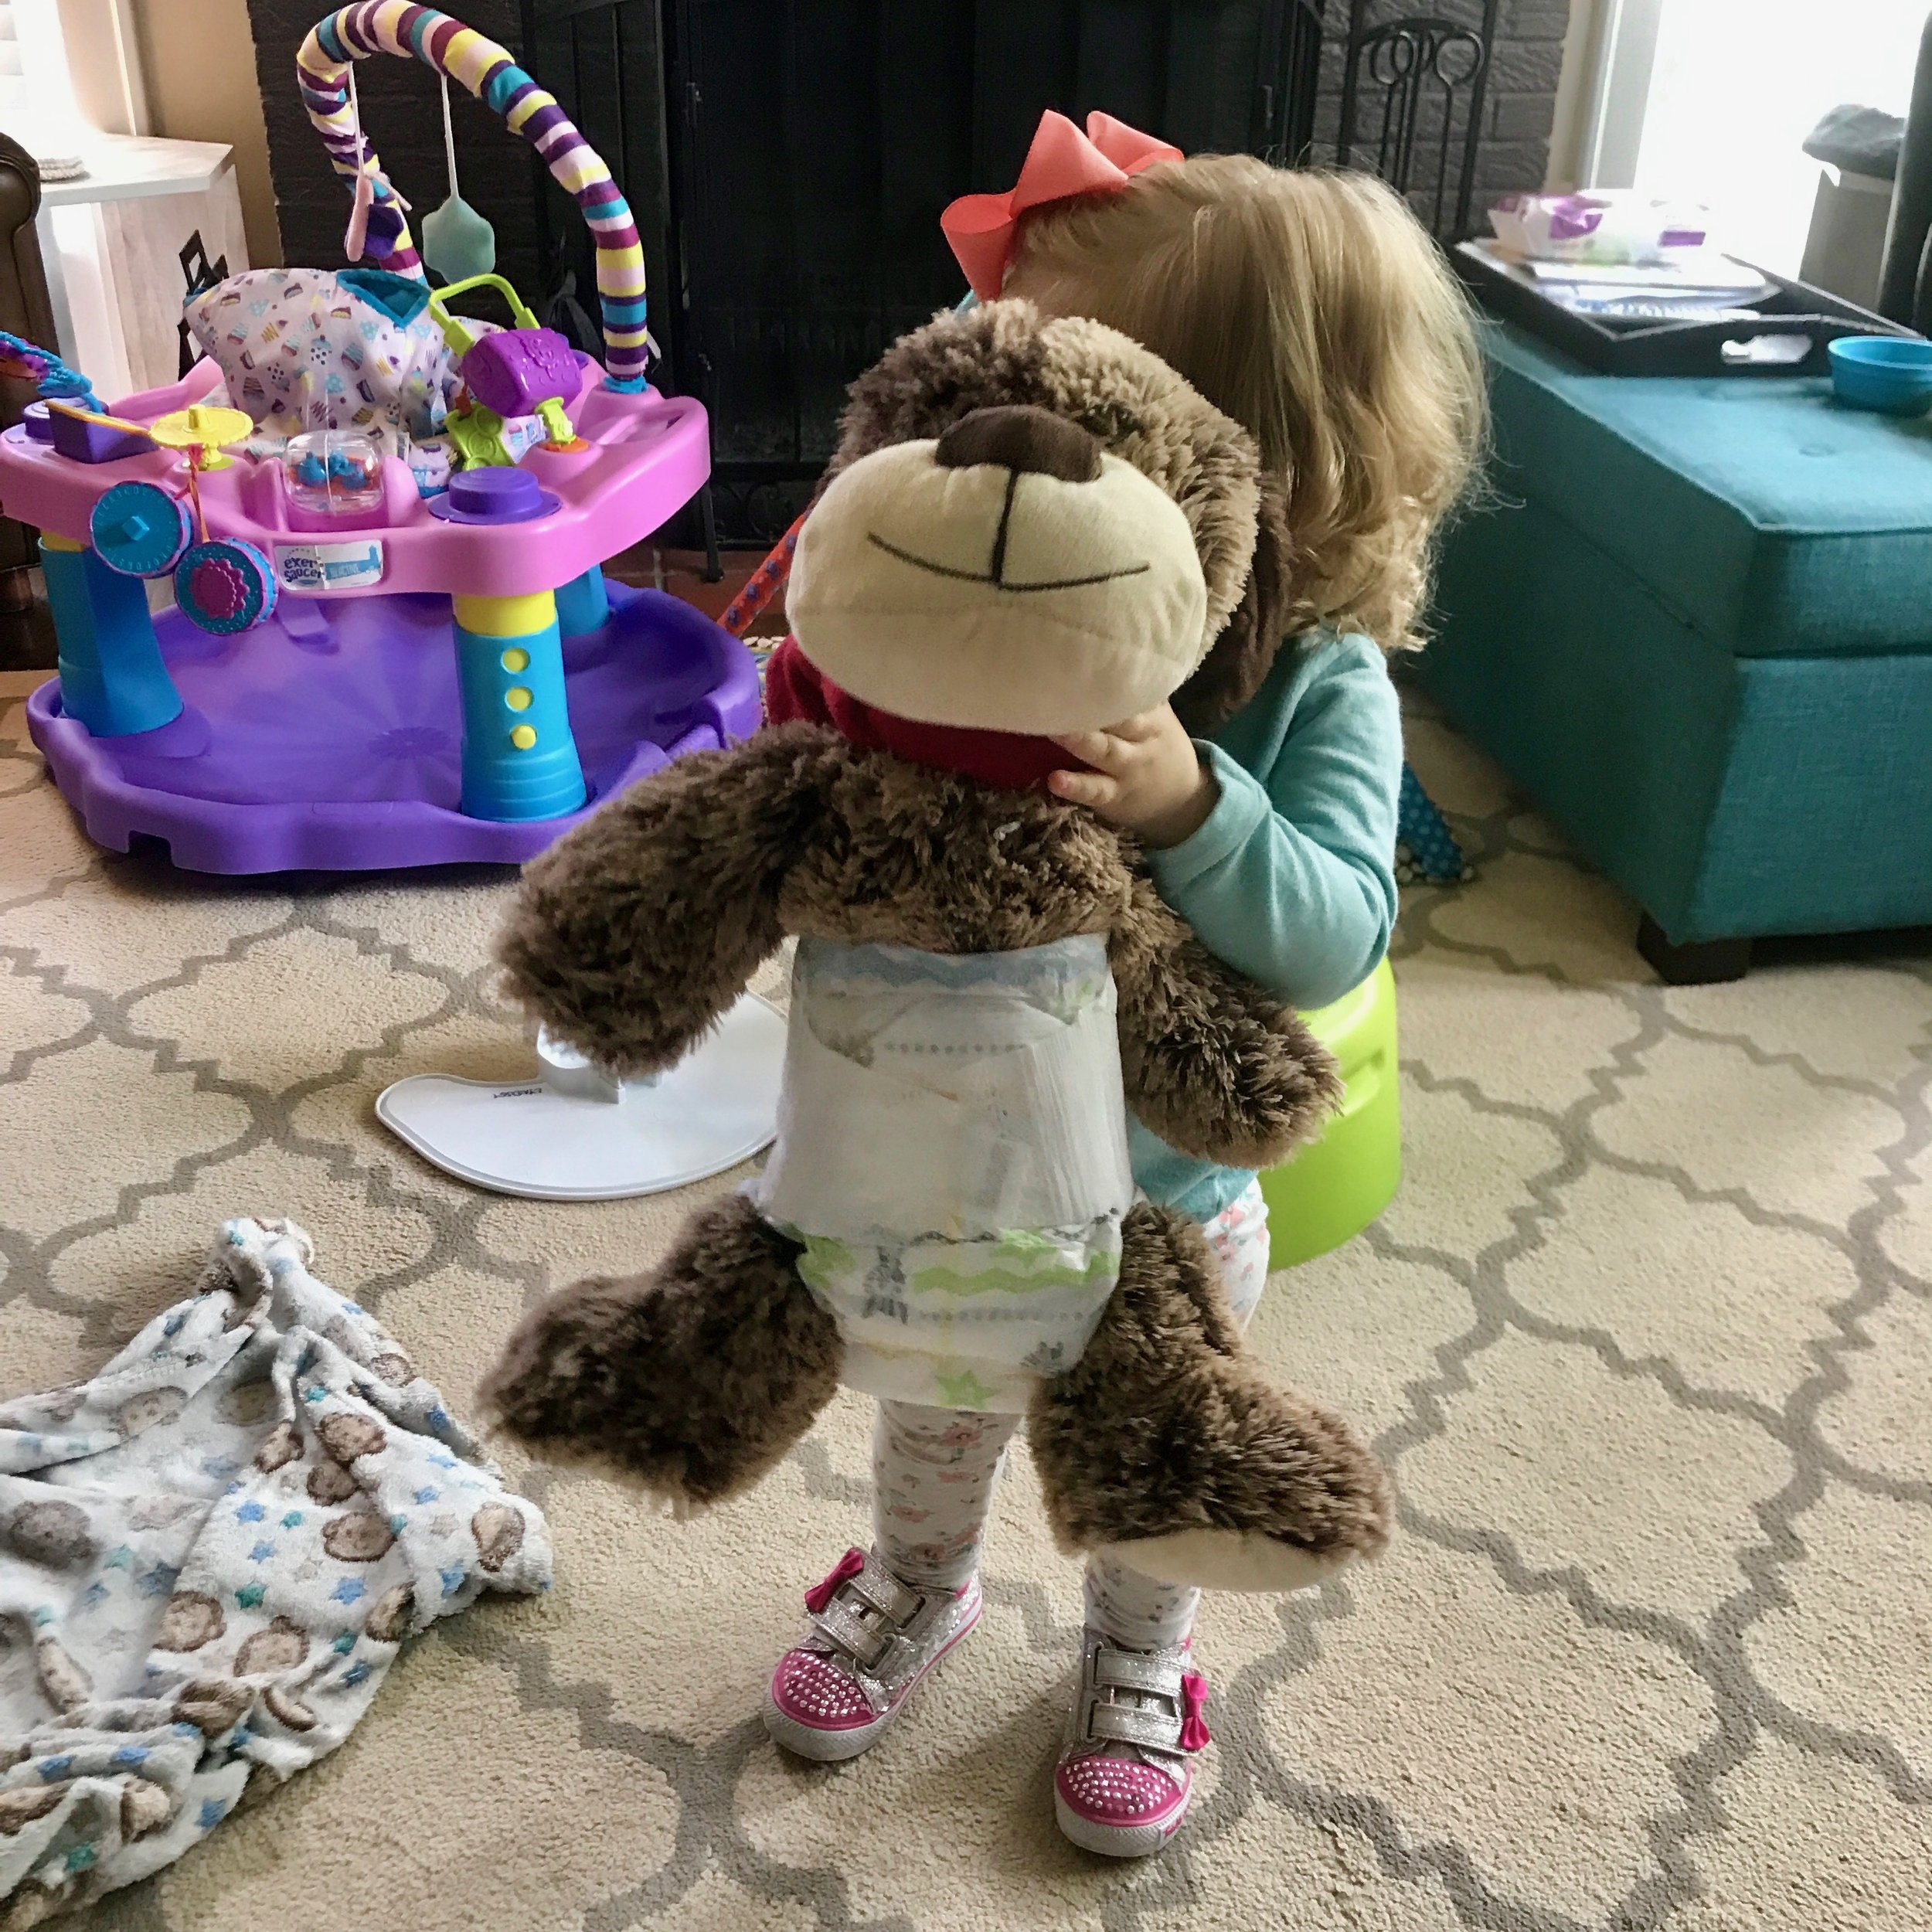 Little Mama loves putting diapers on all the stuffed animals.